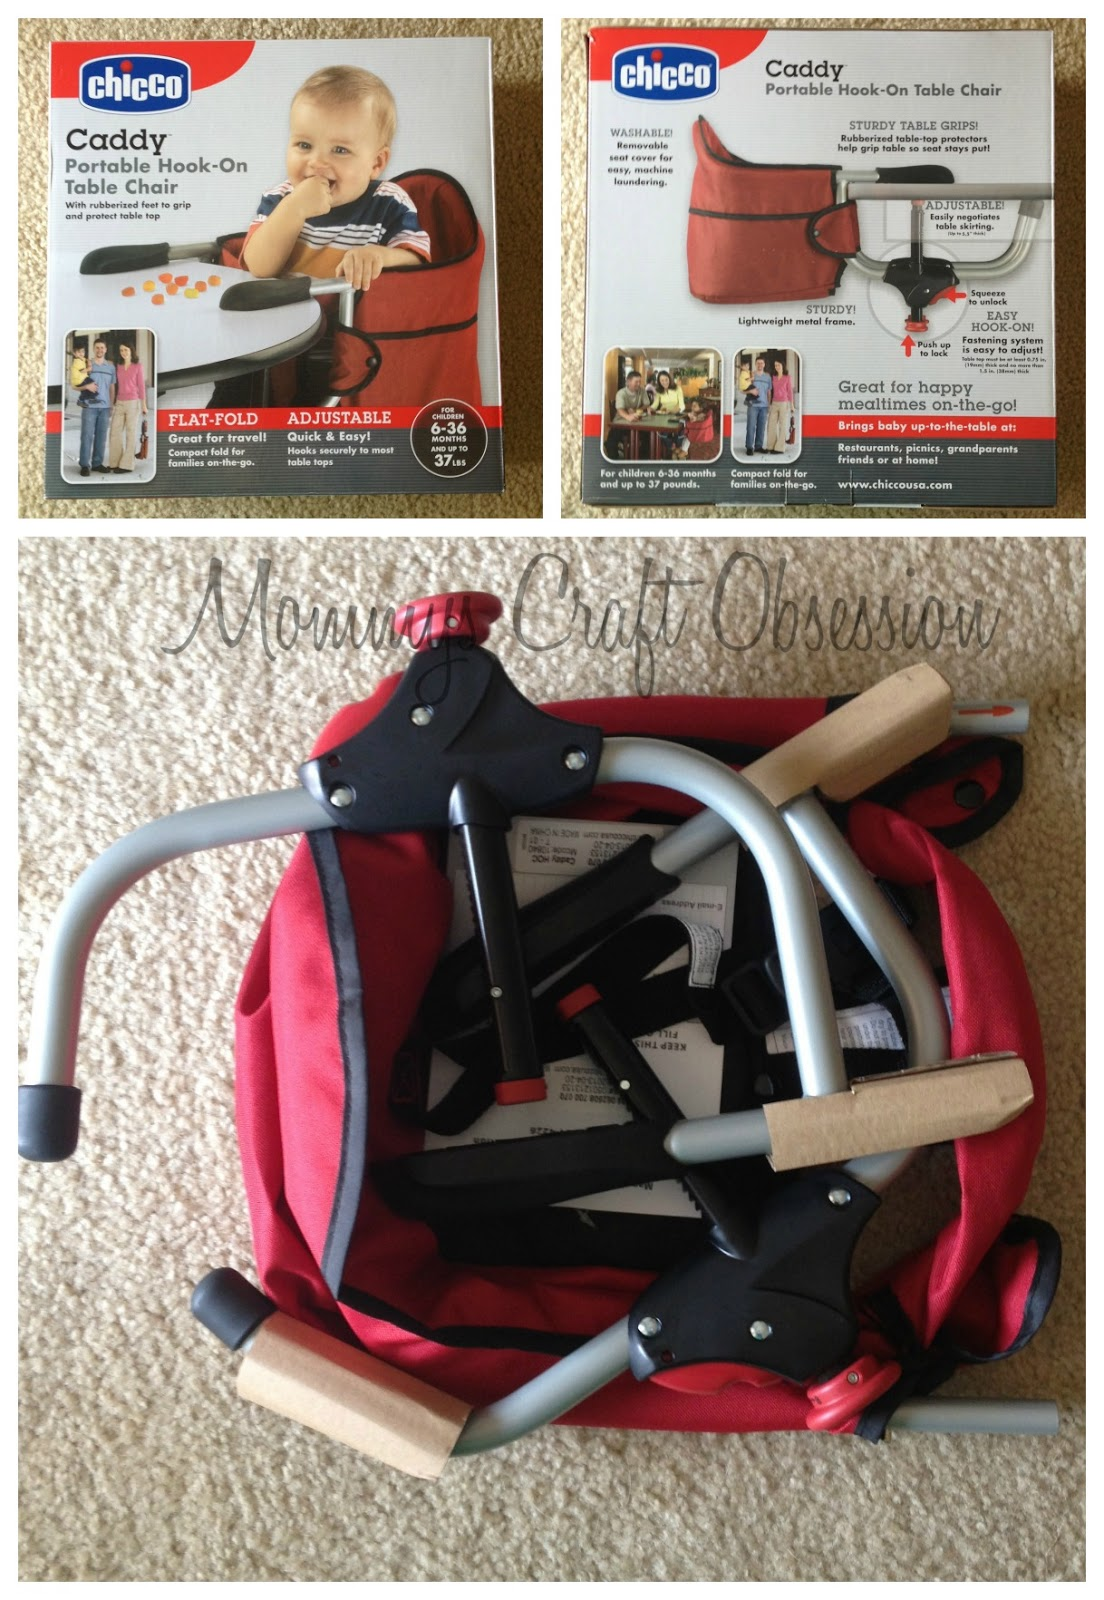 & Mommyu0027s Obsessions: Chicco Caddy Hook-On High Chair Review u0026 Giveaway!